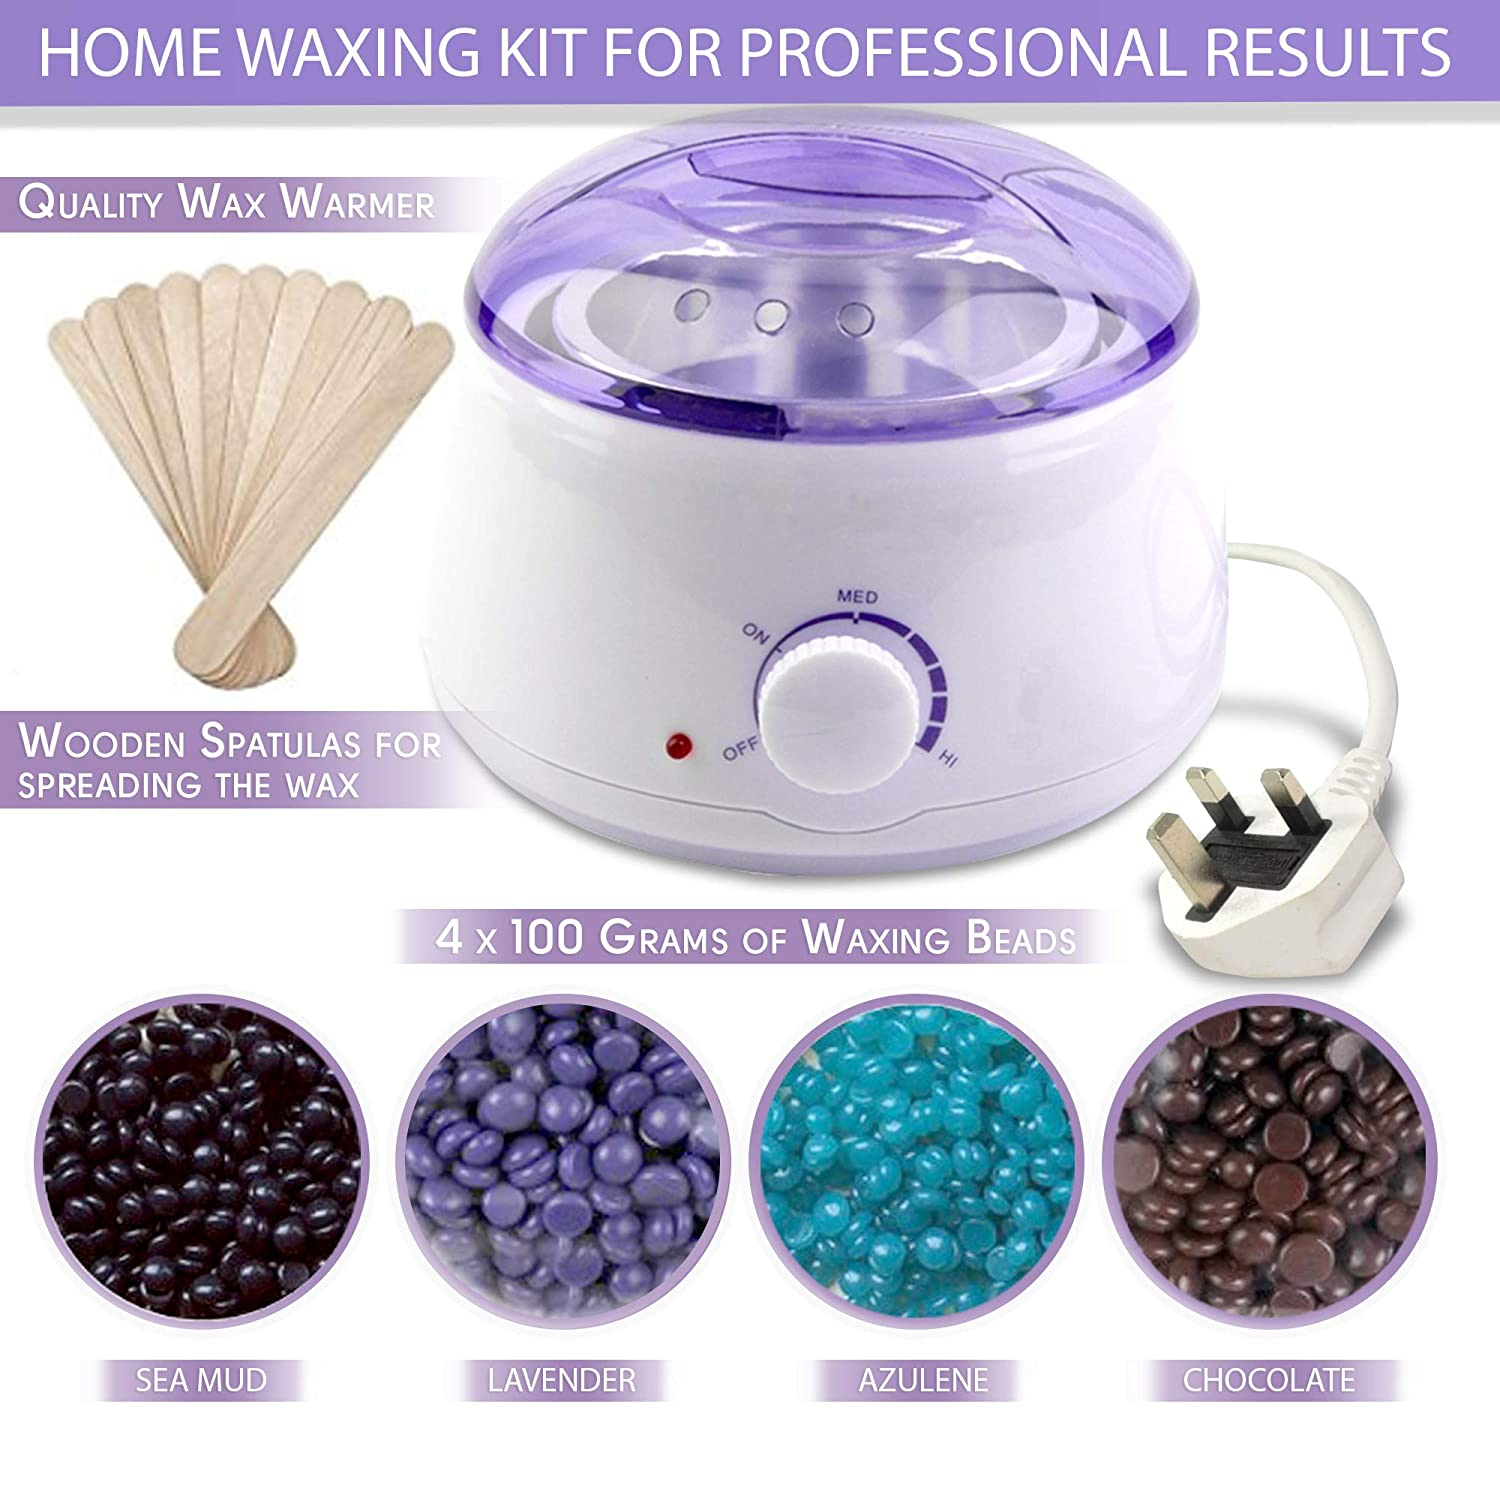 Wax Warmer Waxing Kit for Hair Removal At Home – Adjustable Temperature Wax Warmer – 4-Pack 100g Wax Bags and 20 Application Spatulas Included – See-Through Vented Cover – Auto Shut-Off Function – 14oz Wax Can Paparuna